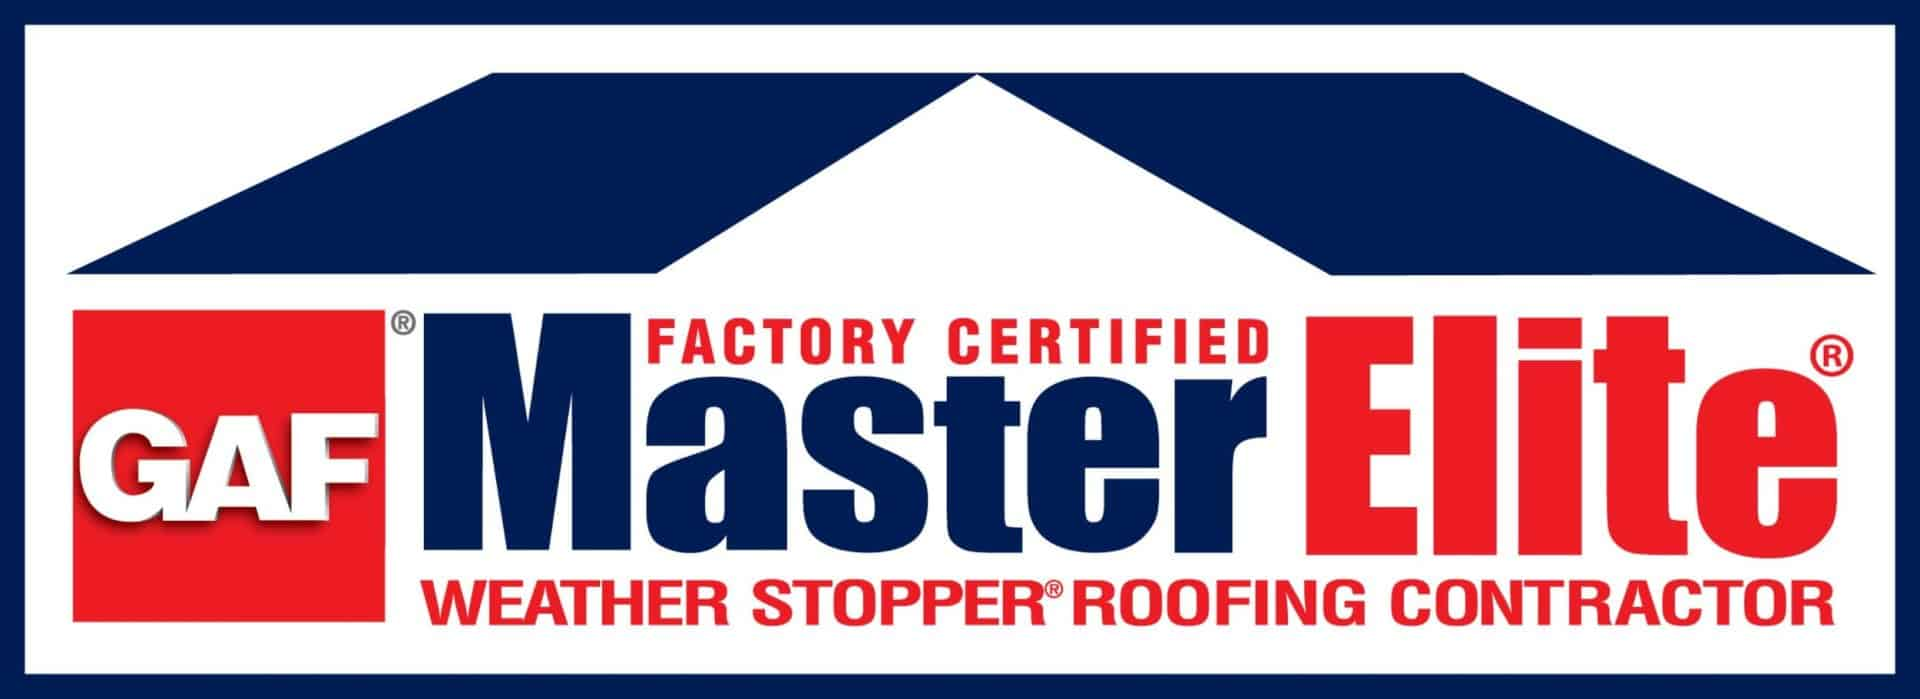 Factory Certified GAF Master Elite Weather Stopper Roofing Contractor